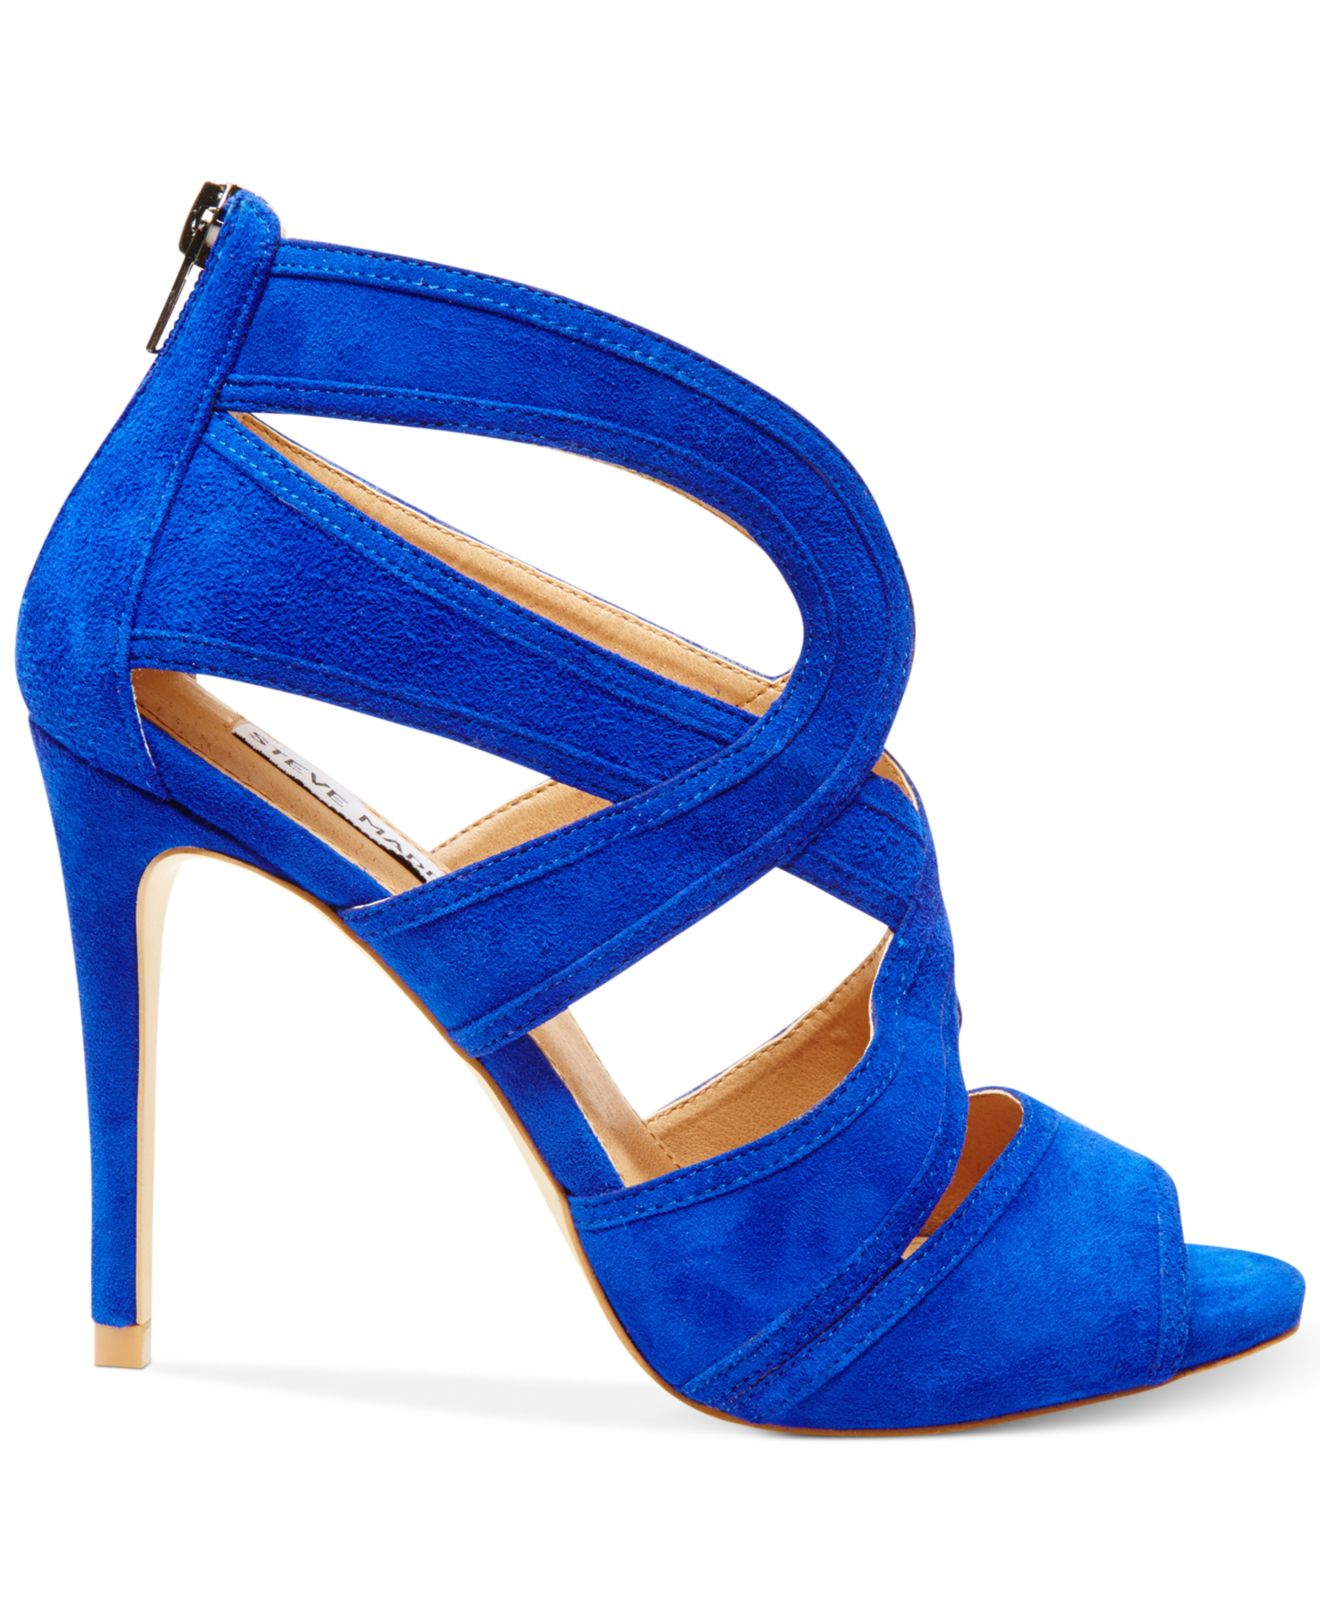 11fd9dcad69 Lyst - Steve Madden Women S Immence Strappy Sandals in Blue